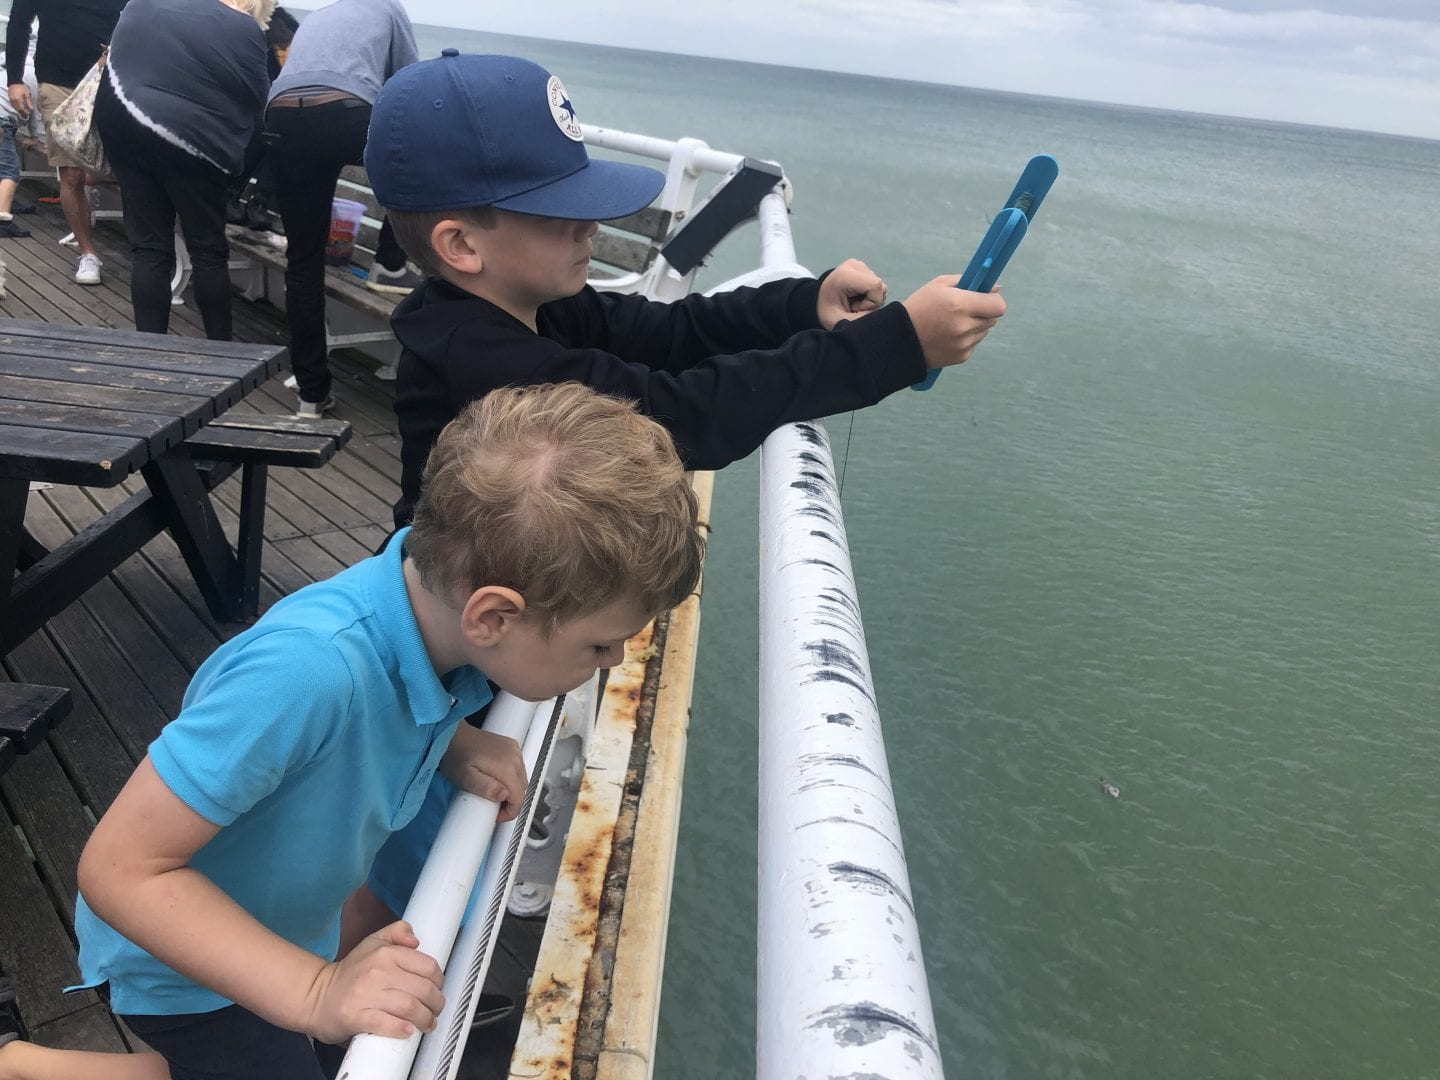 Two boys crabbing off the side of cromer pier